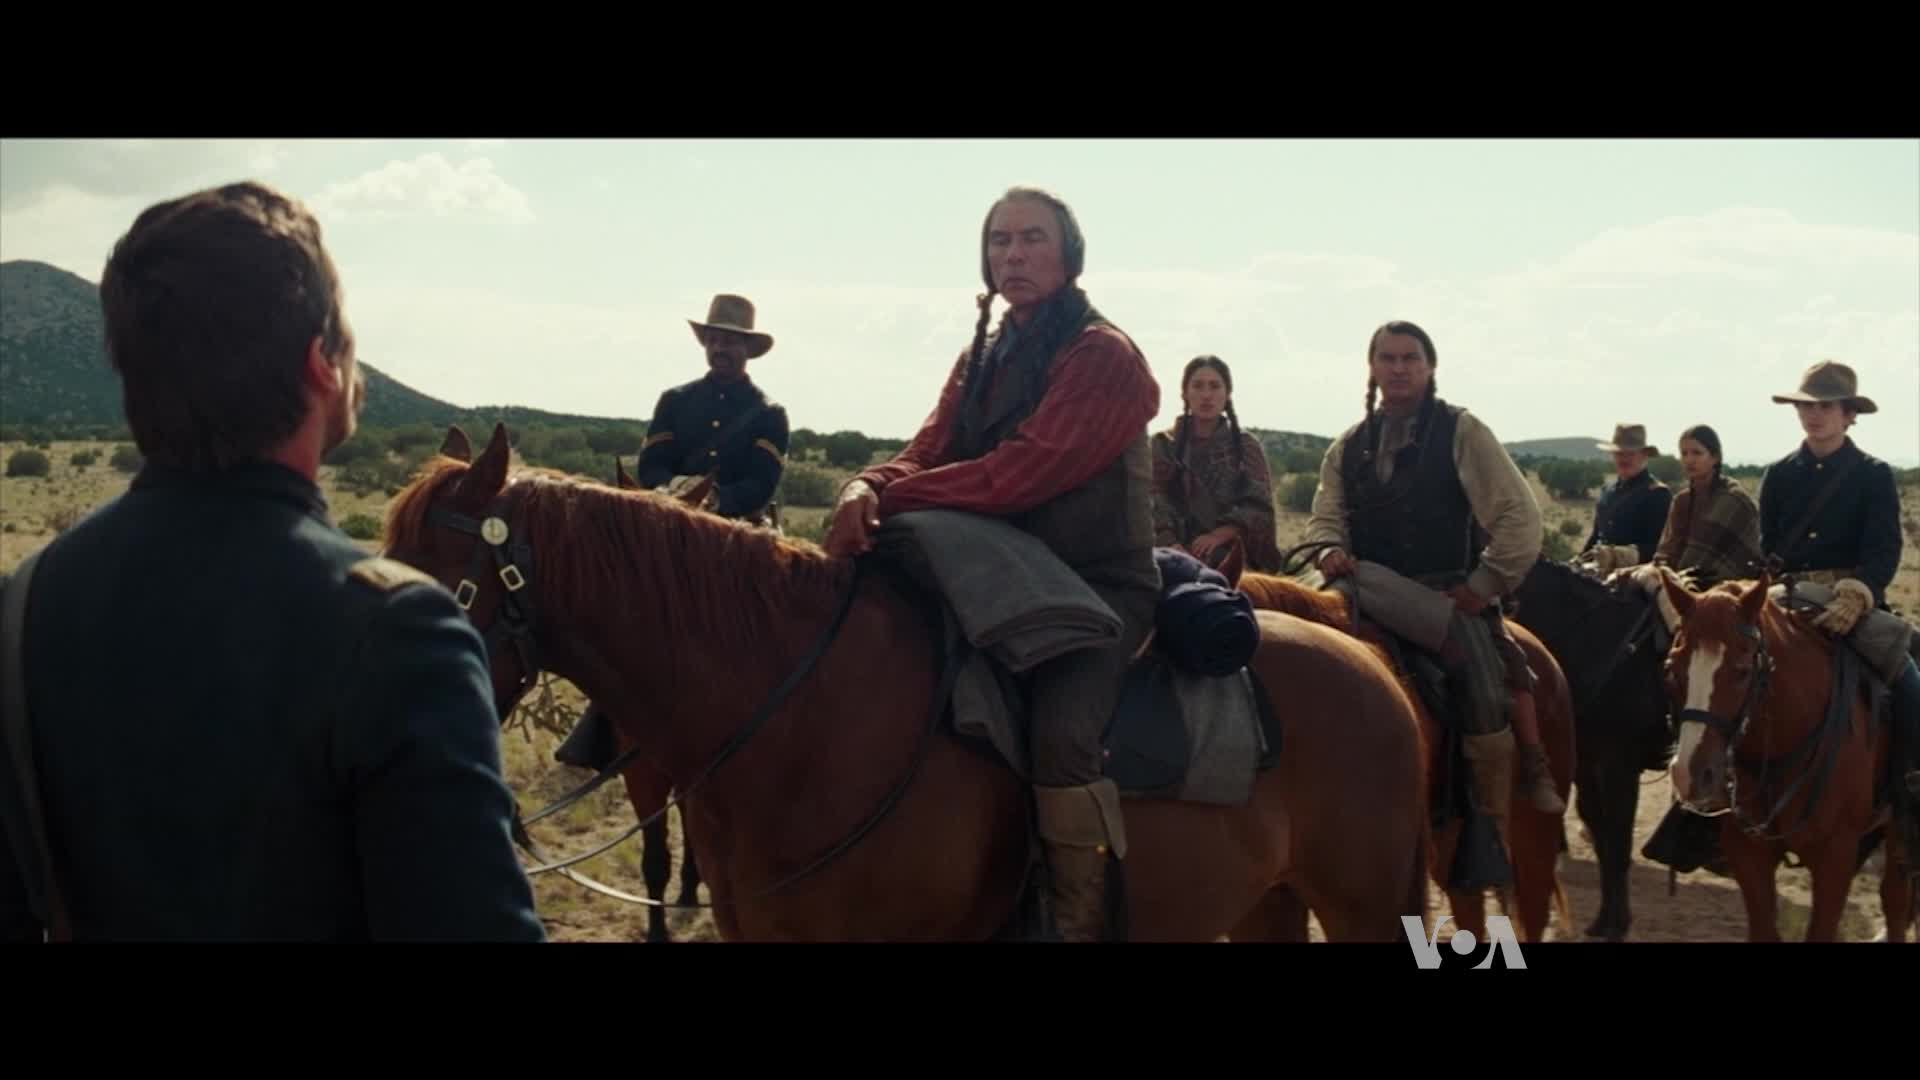 Everyone is a Hostile in Scott Cooper's Revisionist Western